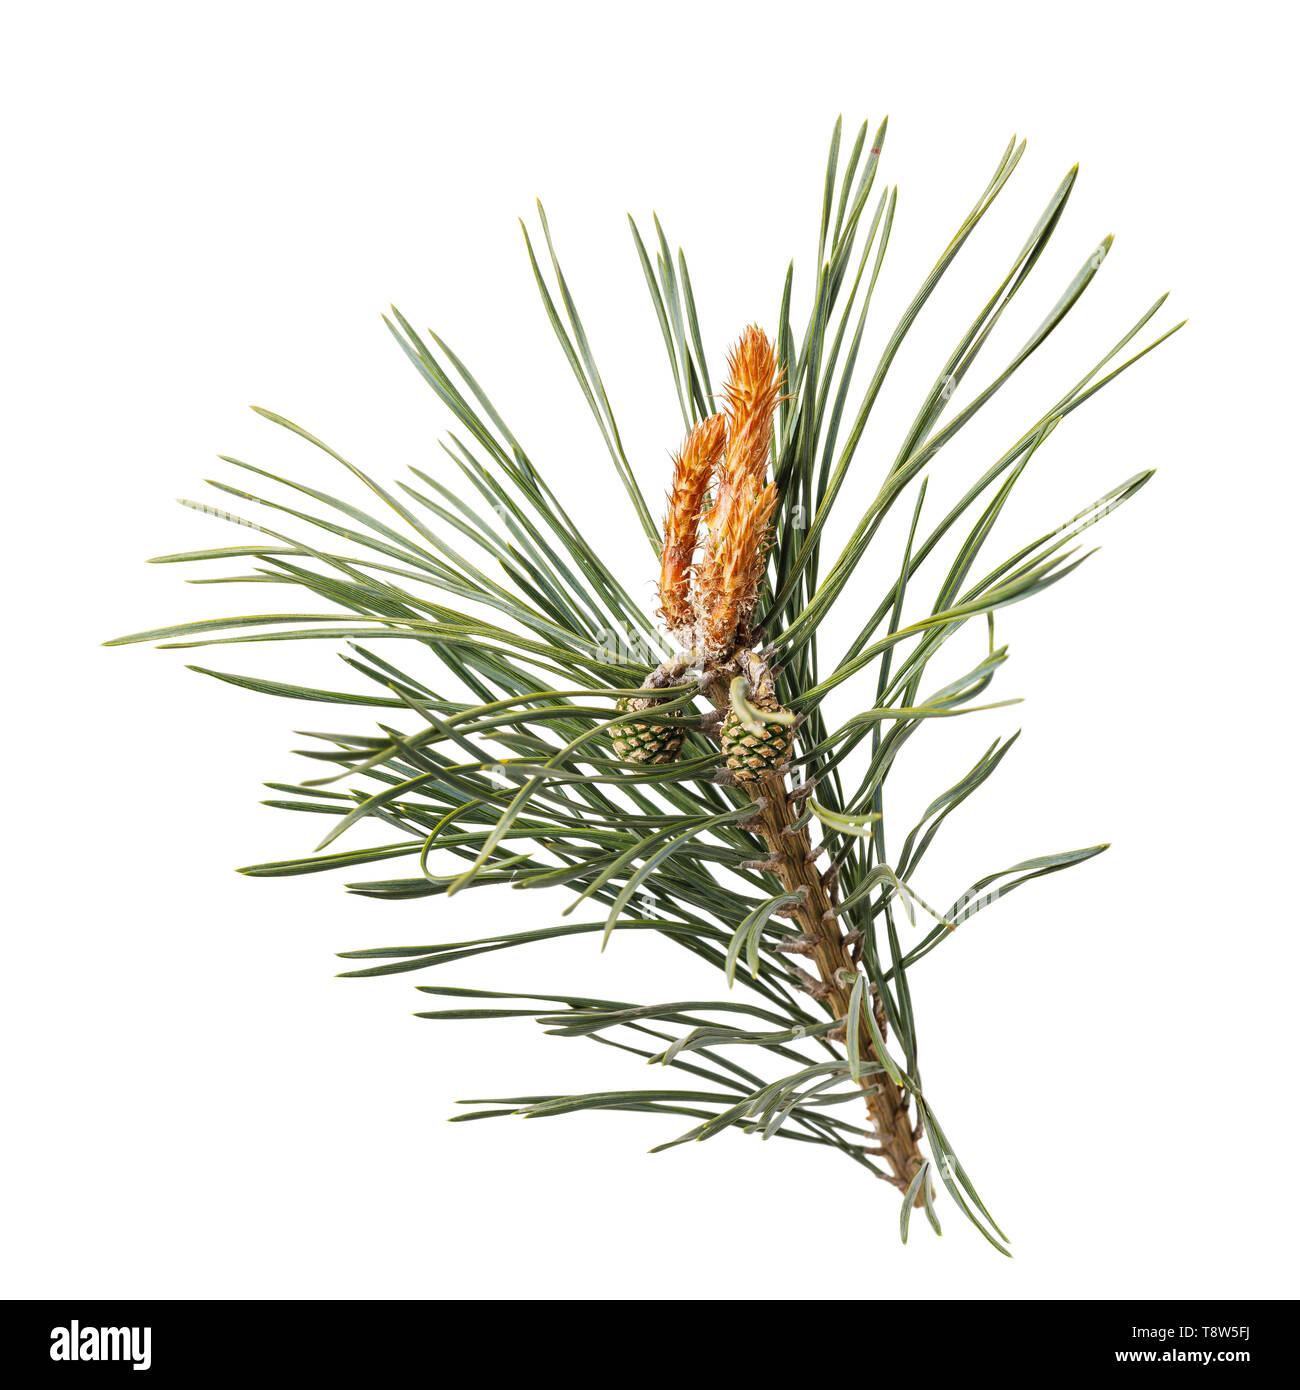 Pine branch with cones isolated on white background - Stock Image